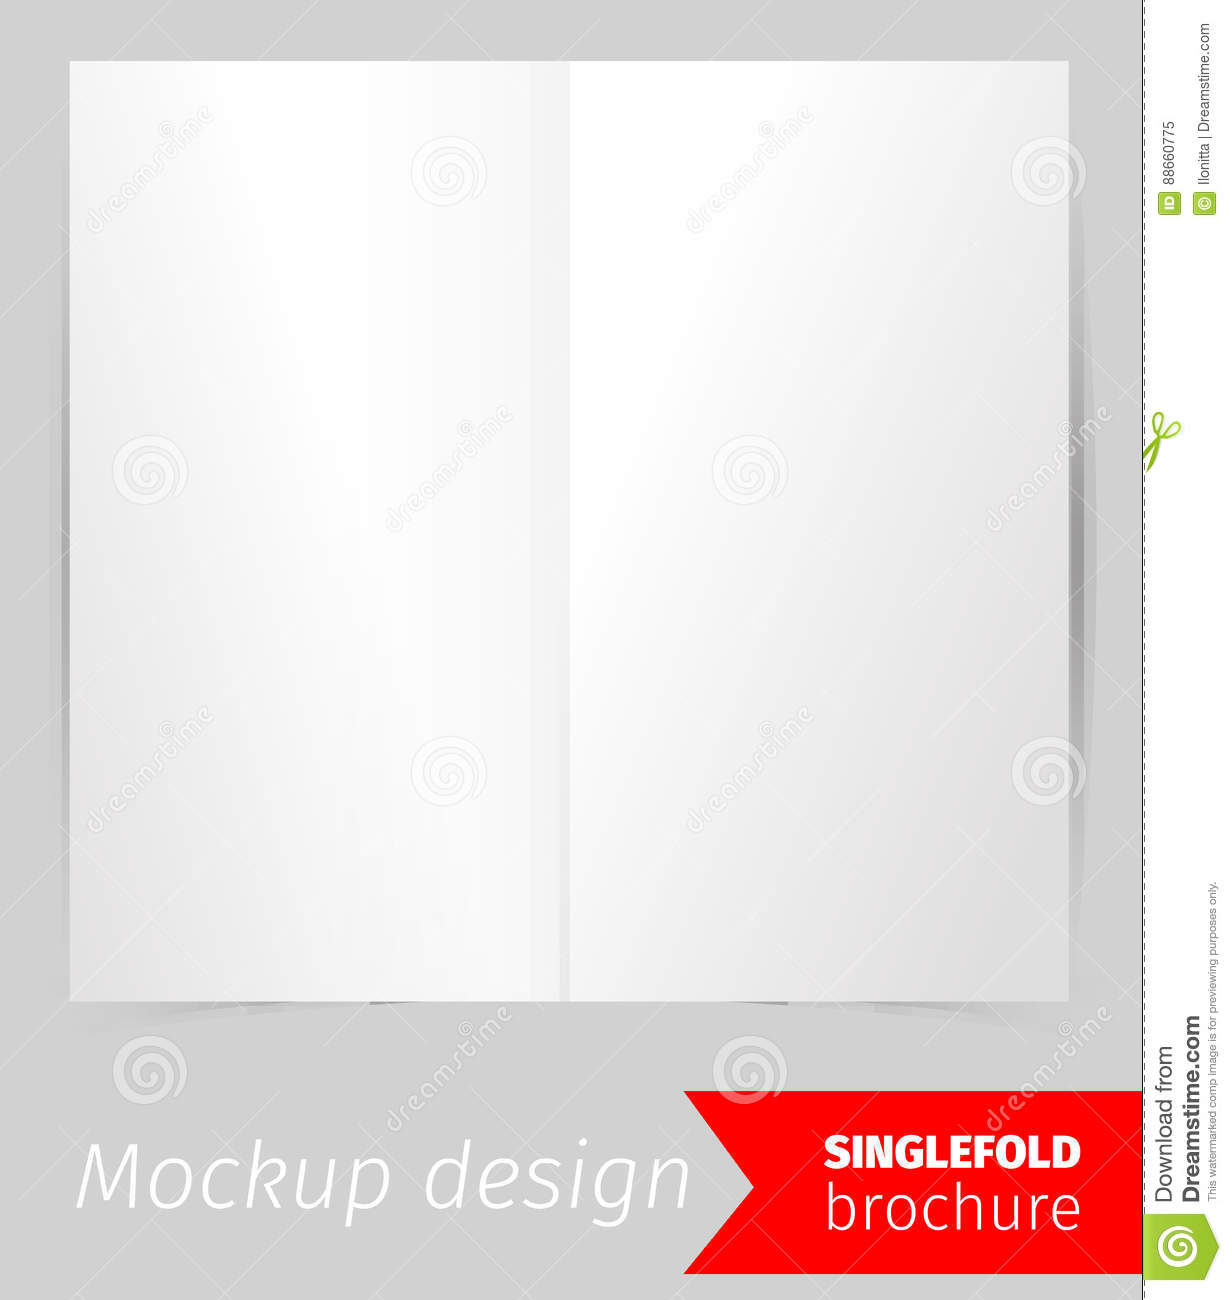 single fold brochure mockup design stock vector illustration of